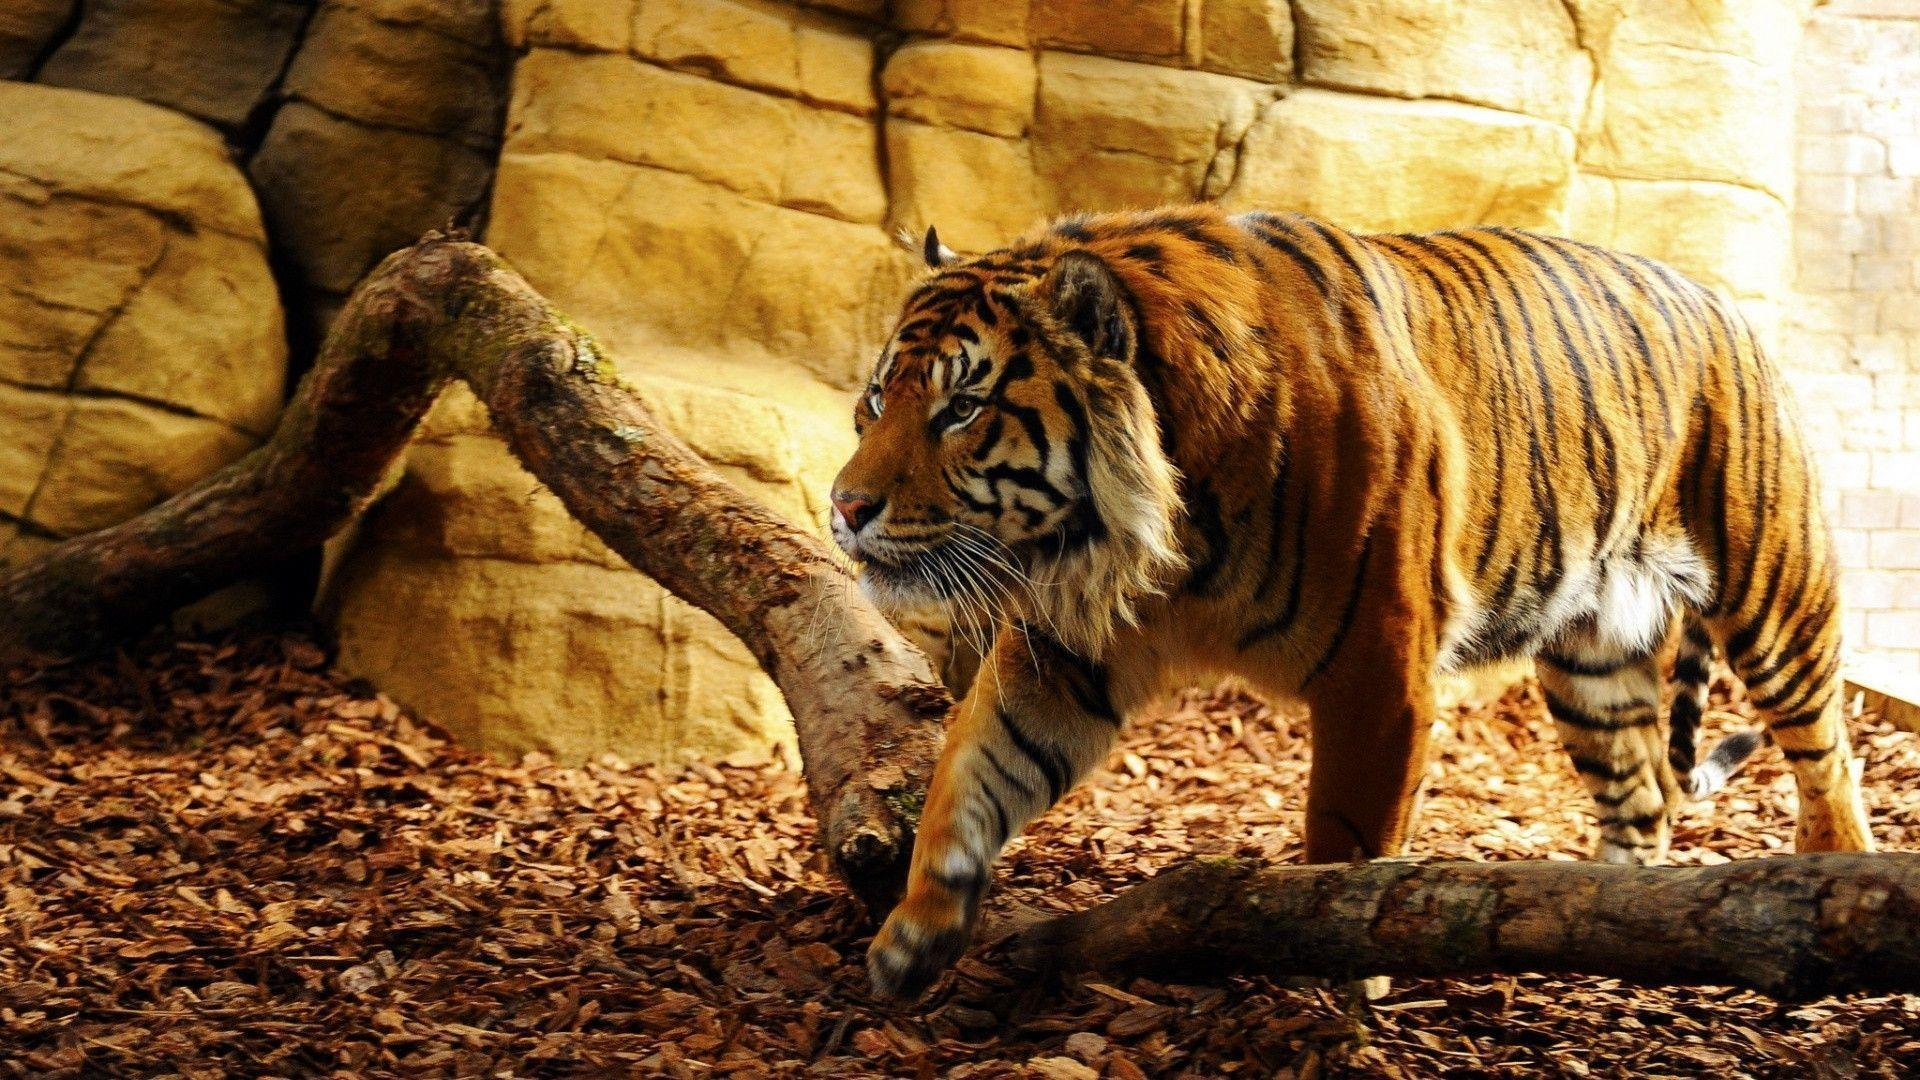 Tiger Wallpapers - HD Wallpapers Inn